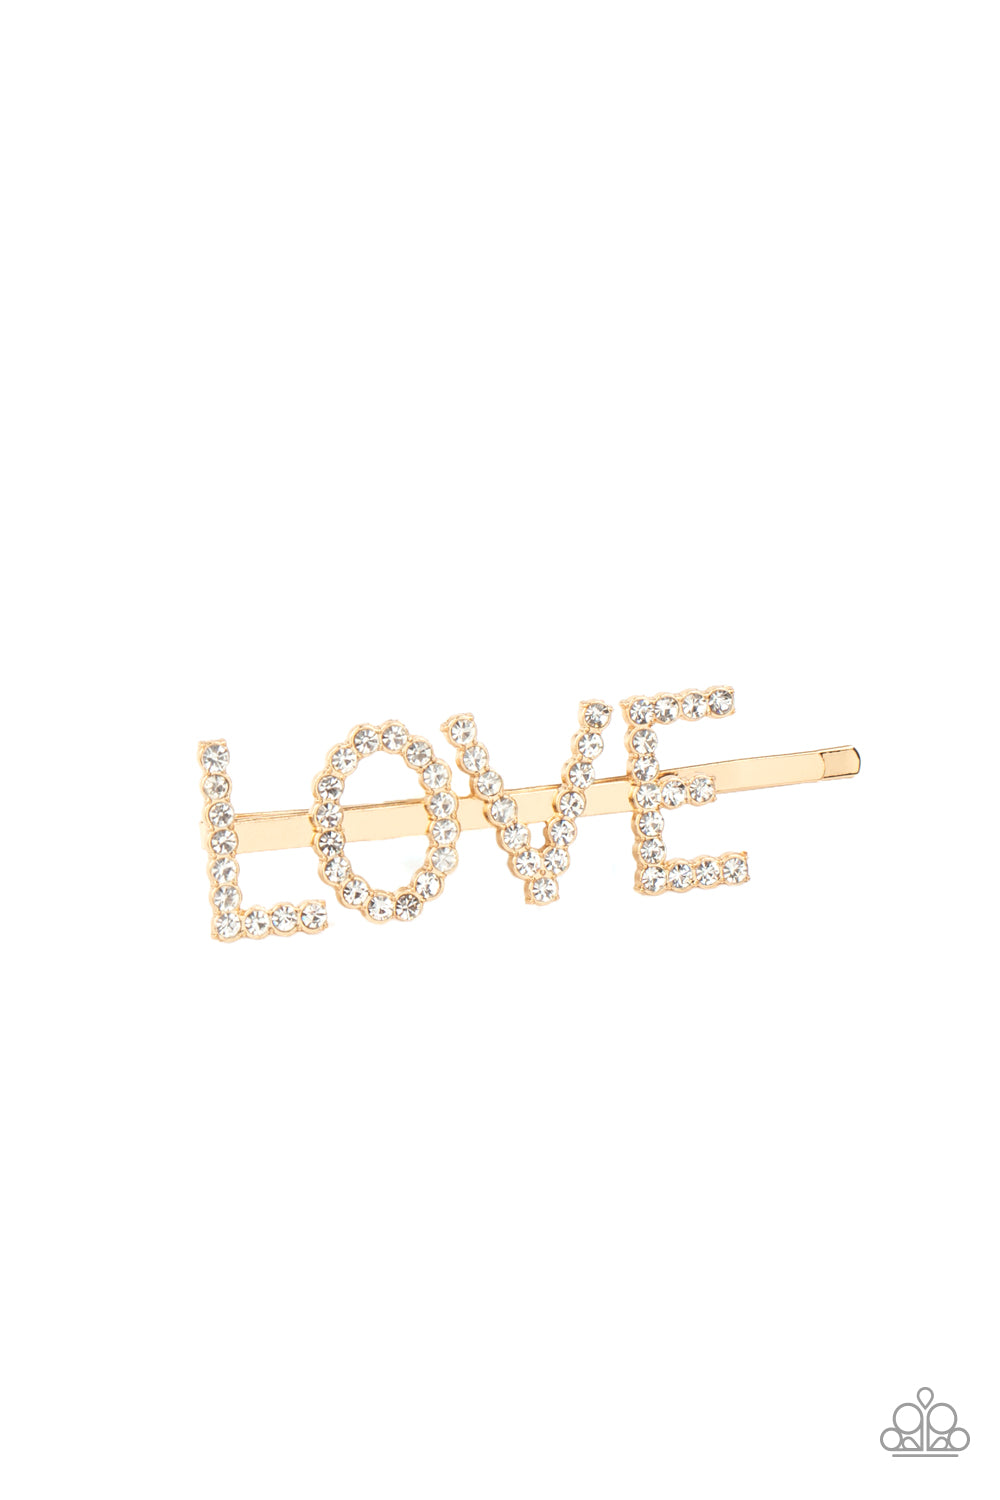 Paparazzi Jewelry & Accessories - All You Need Is Love - Gold Hair Clips. Bling By Titia Boutique